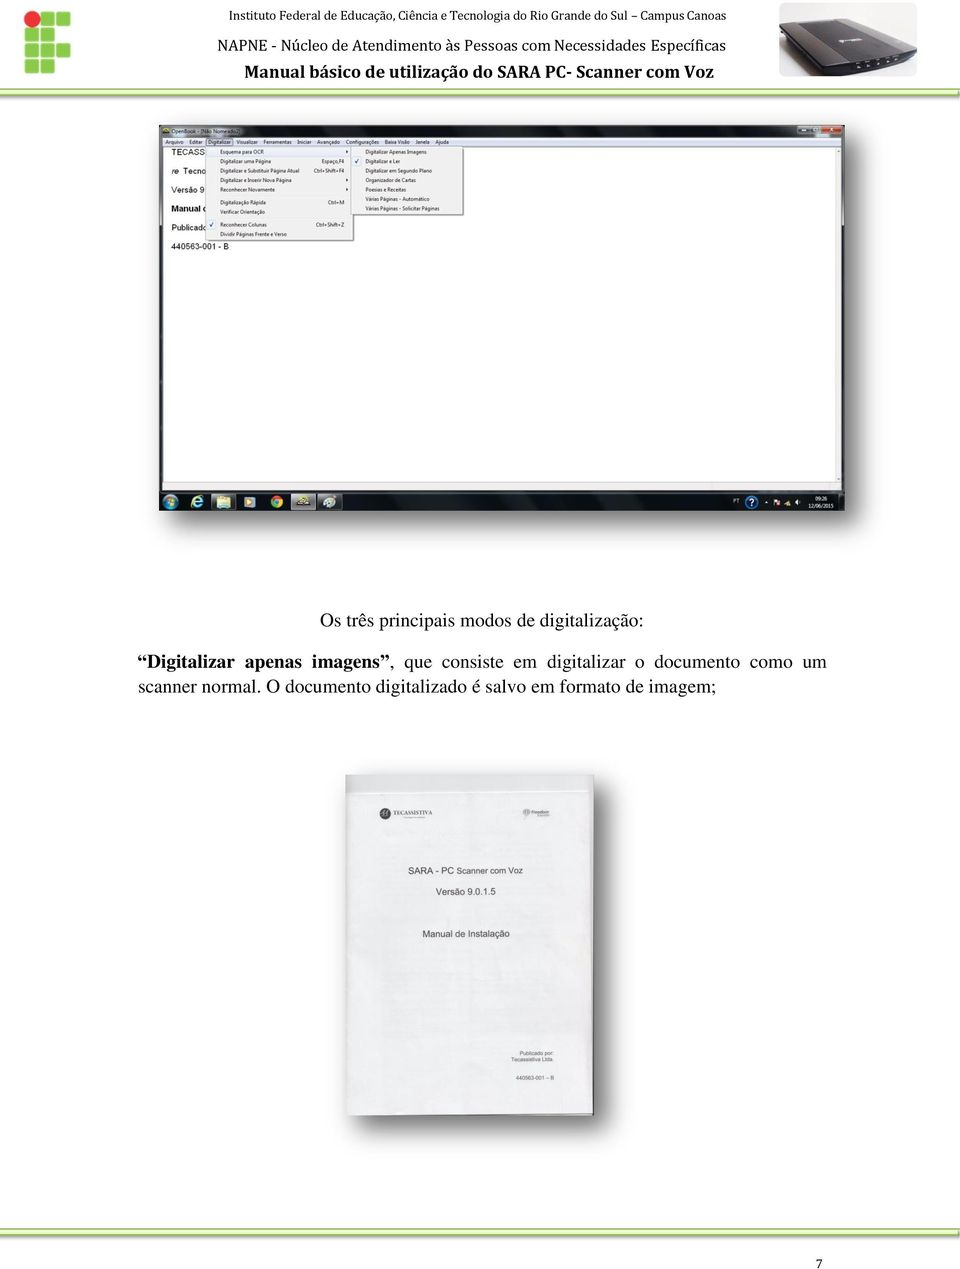 digitalizar o documento como um scanner normal.